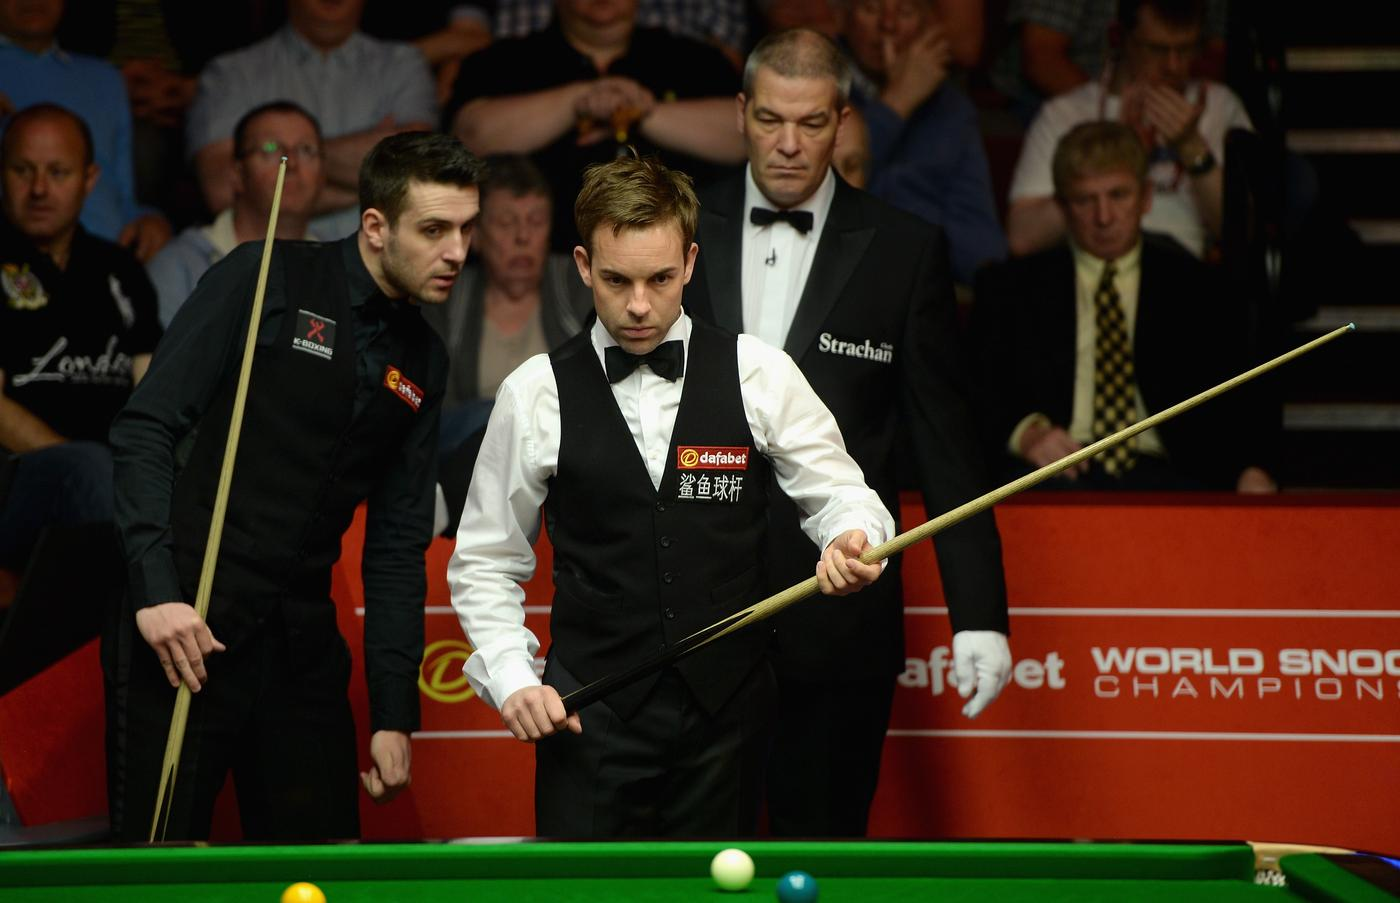 Mark Selby says fellow snooker star Ali Carter has shown great character